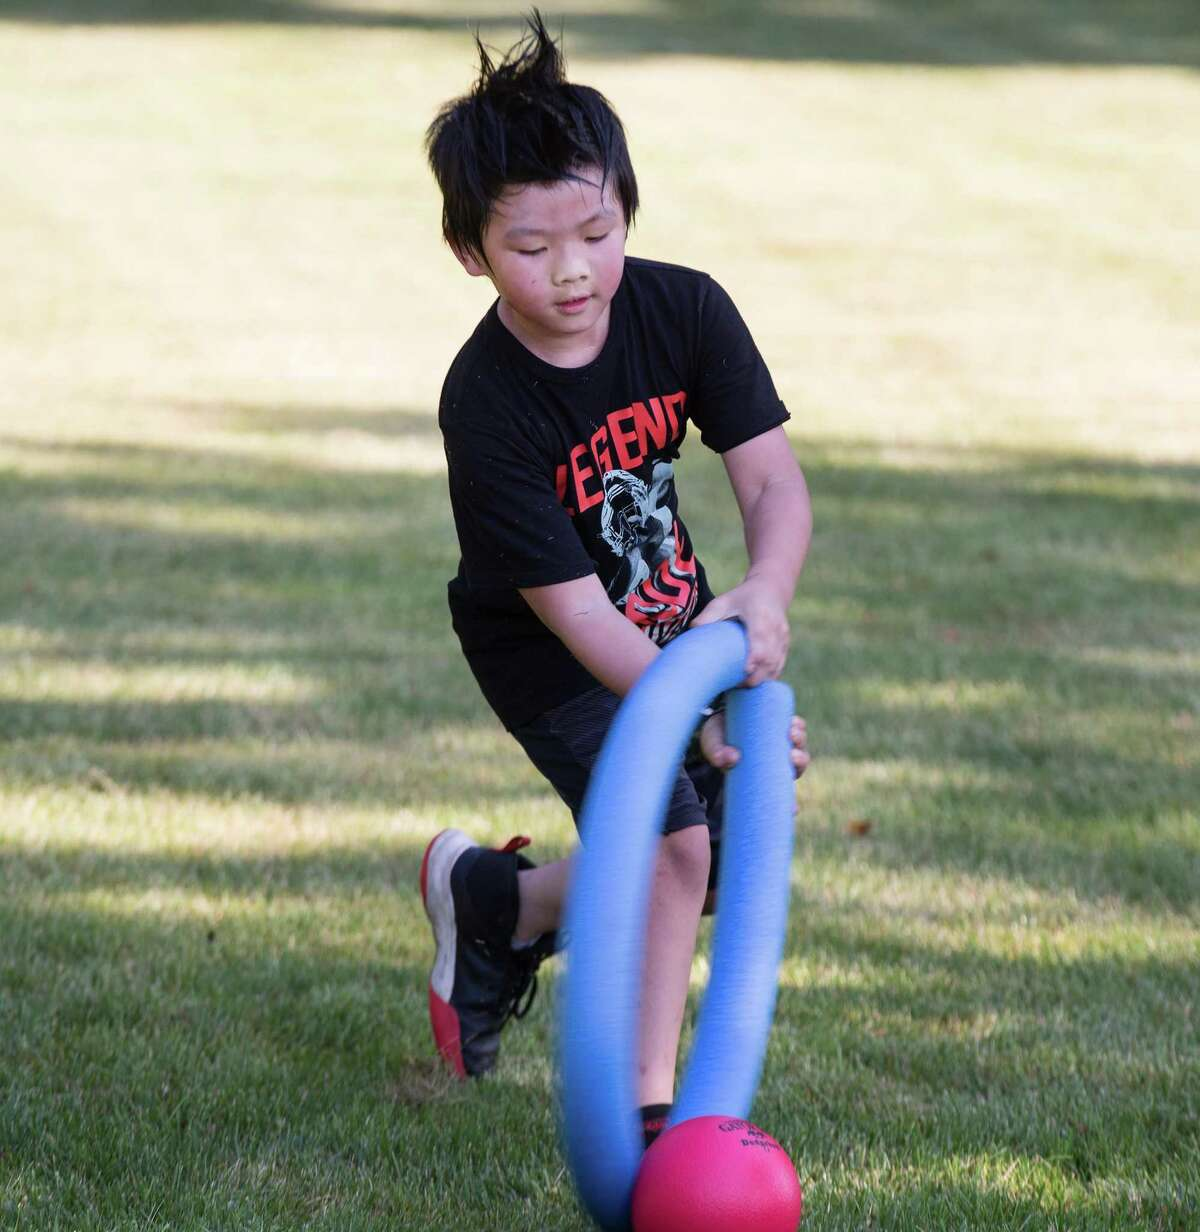 Max Lee hits a ball during a game of noodle hockey on opening day of Camp Looper and Cool Tots.